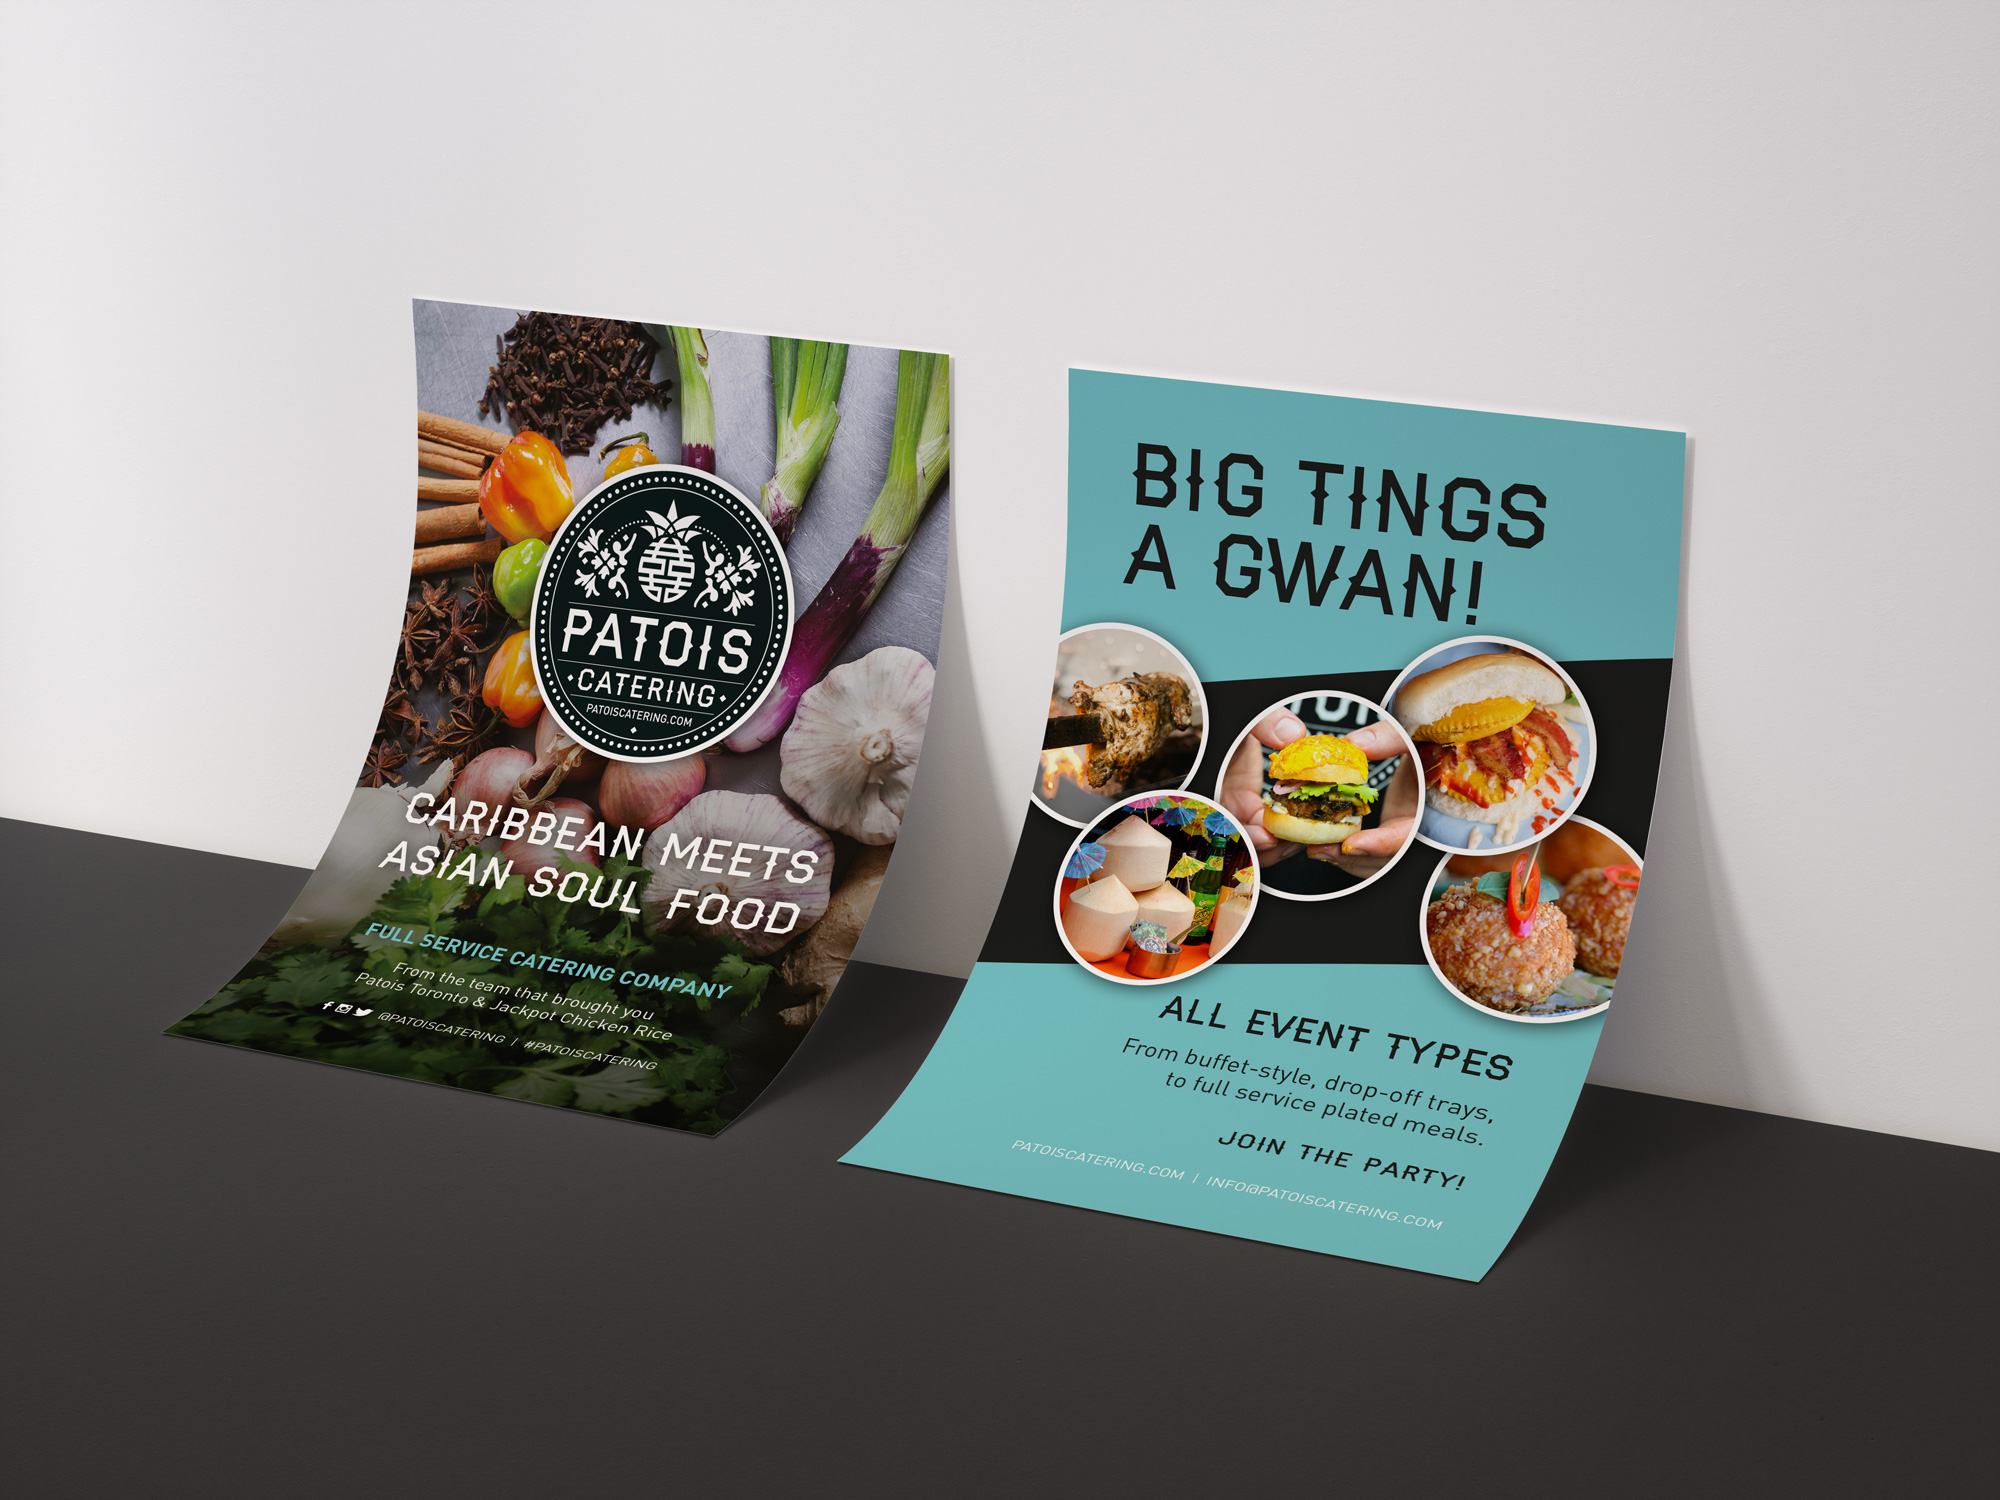 Patois Catering flyer designed by Elsie Lam.